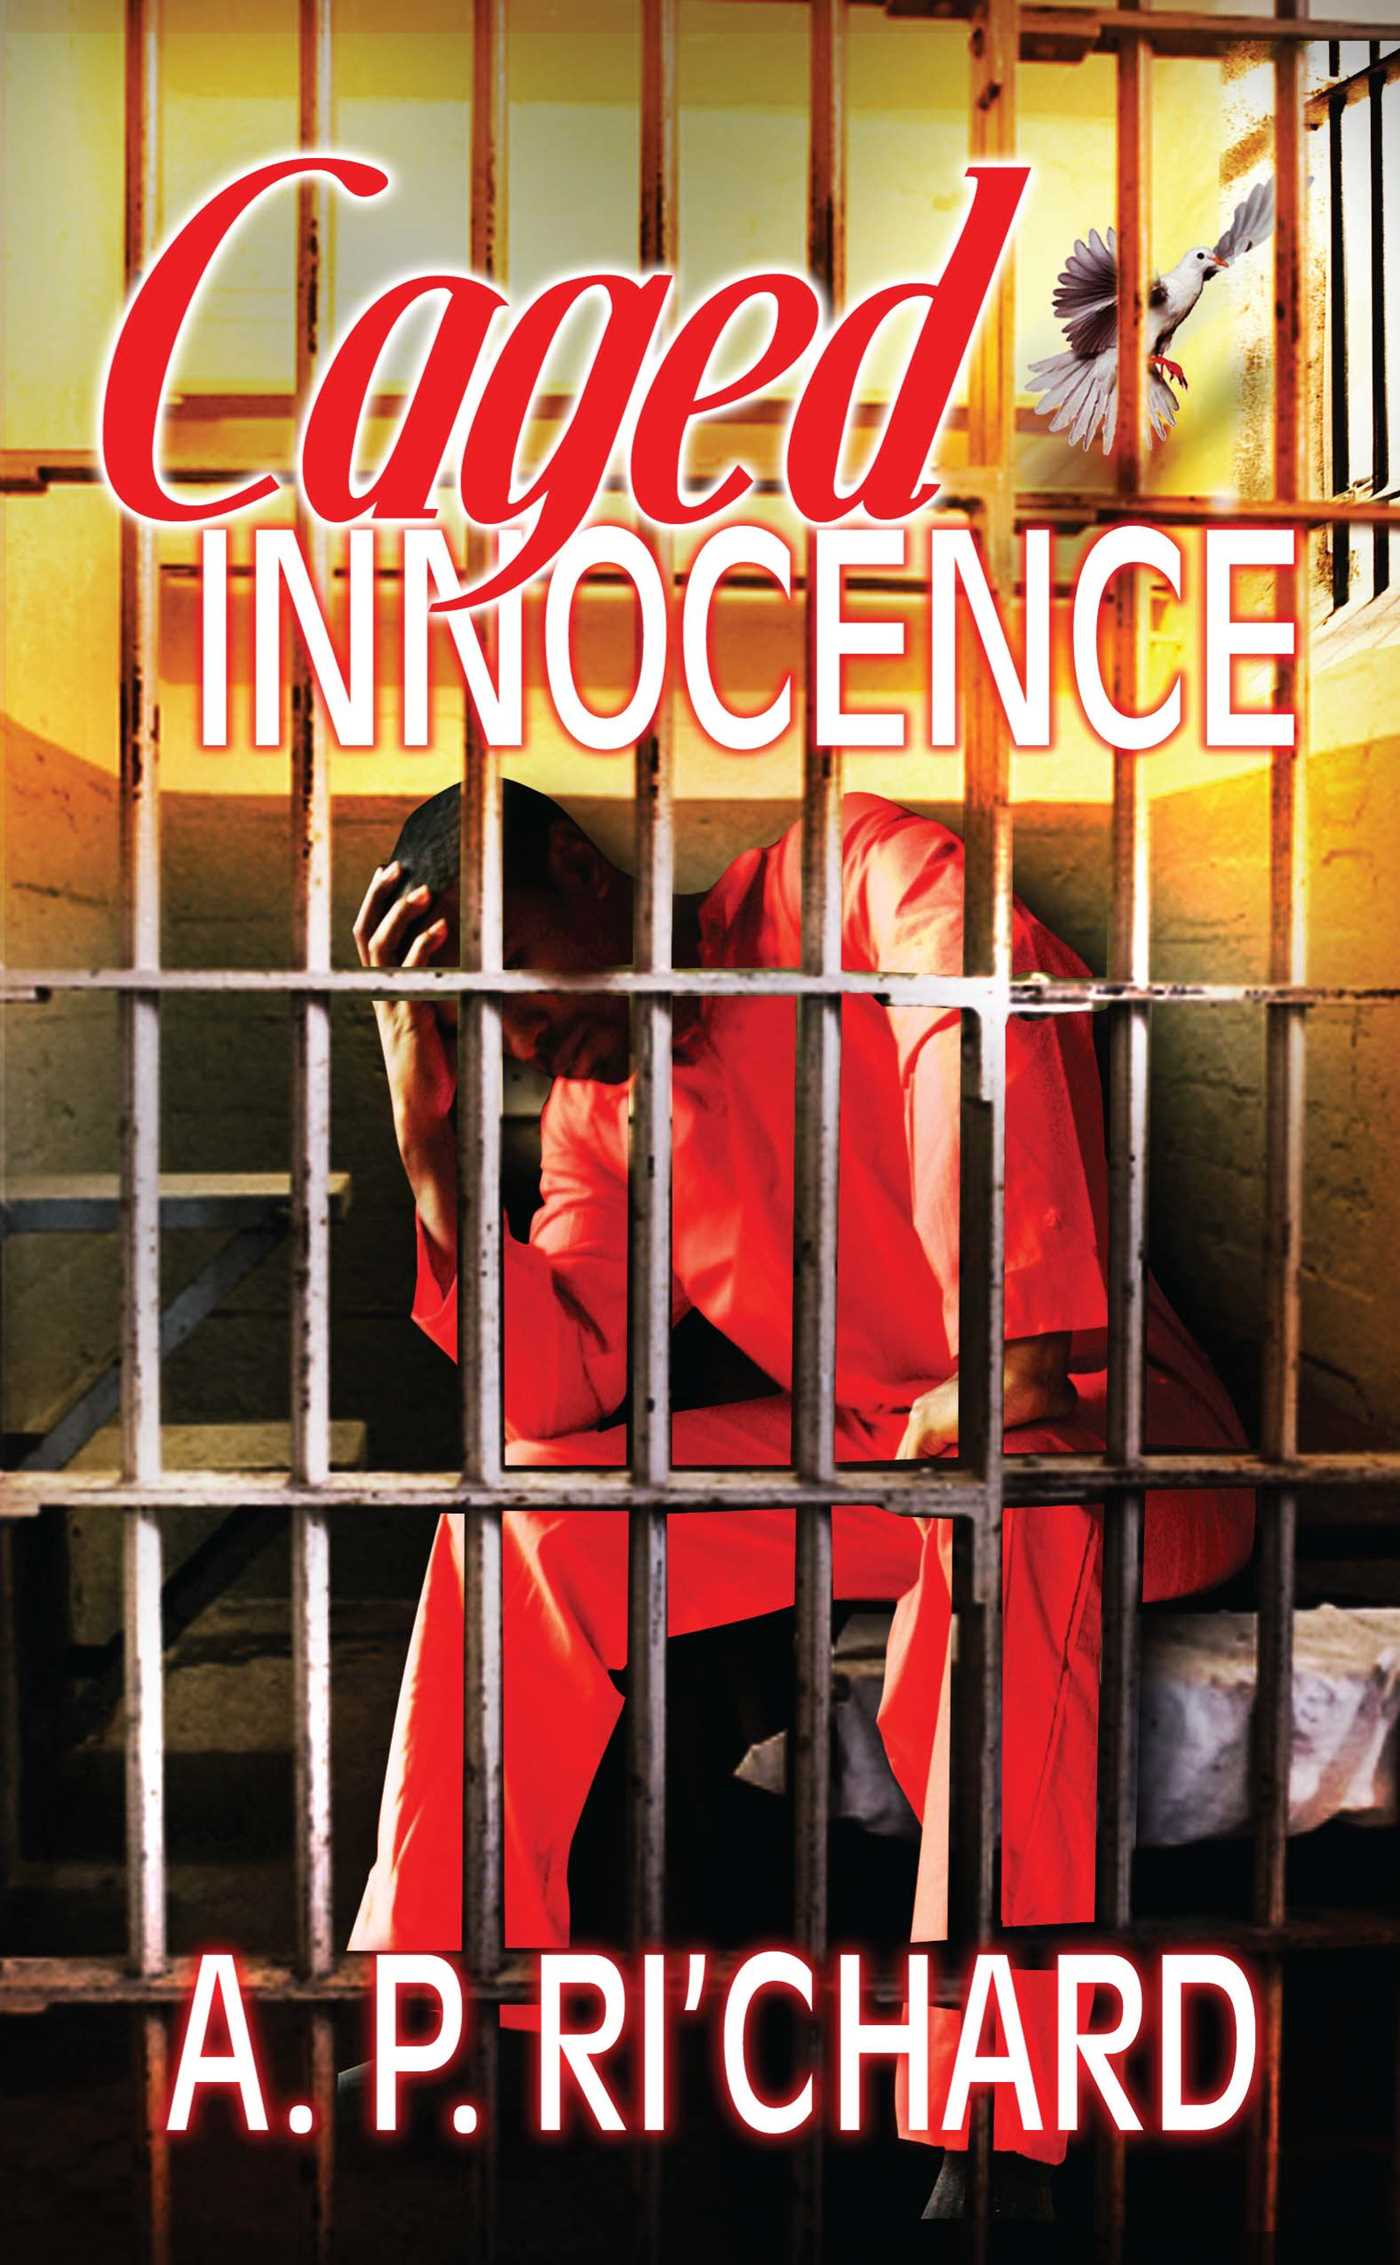 Caged innocence 9781416585879 hr